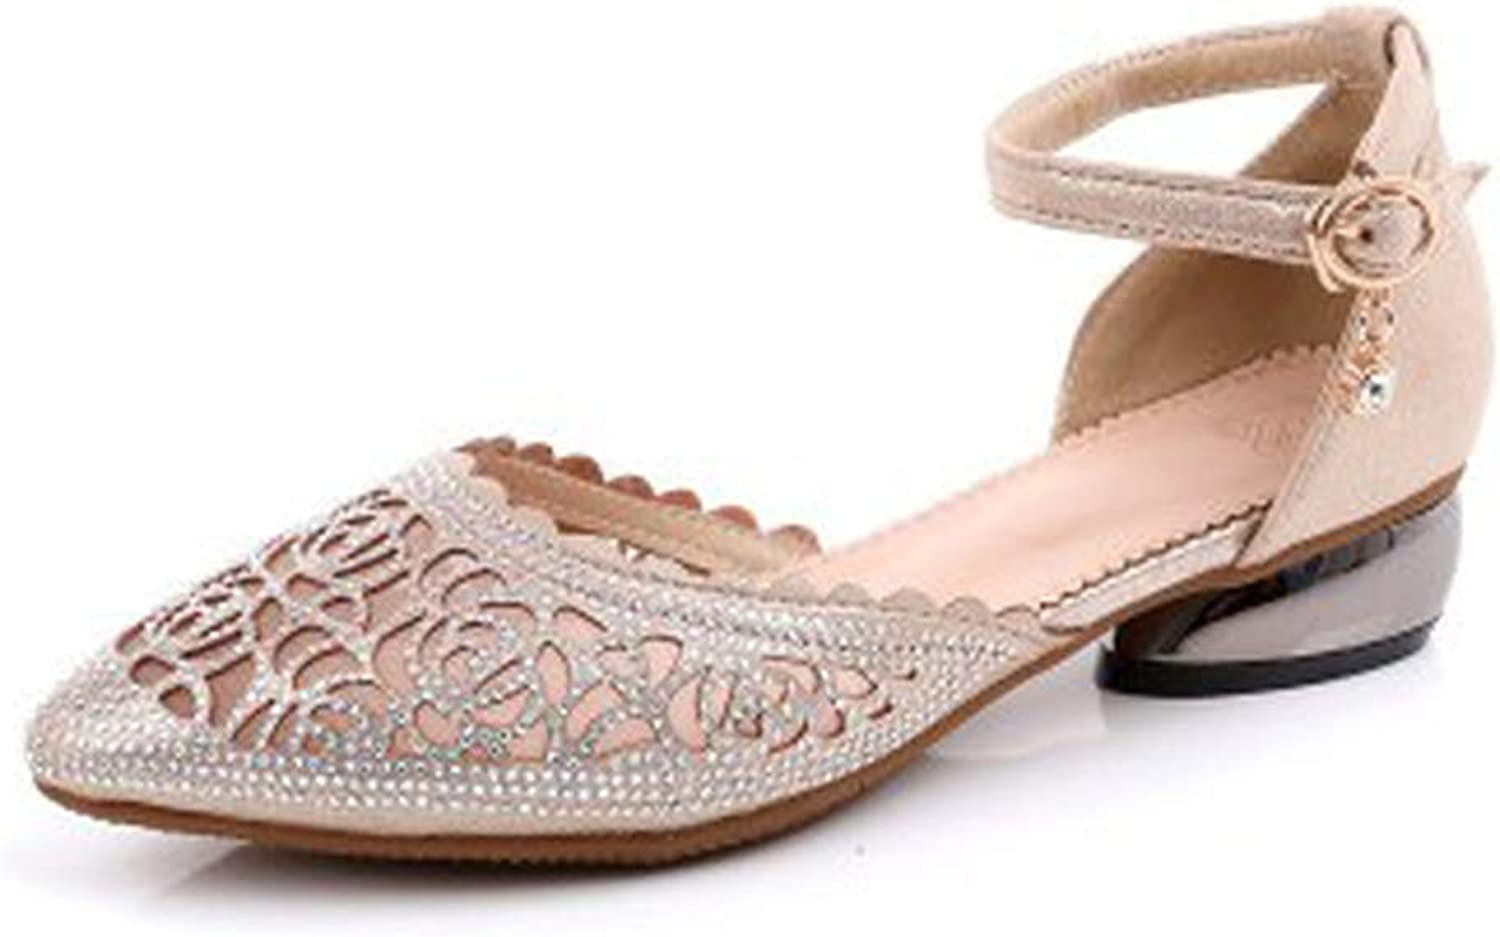 PREtty-2 Summer shoes Genuine Leather Crystal Sandals Pointed Toe Mesh Party Thick Low Heels Sandalias